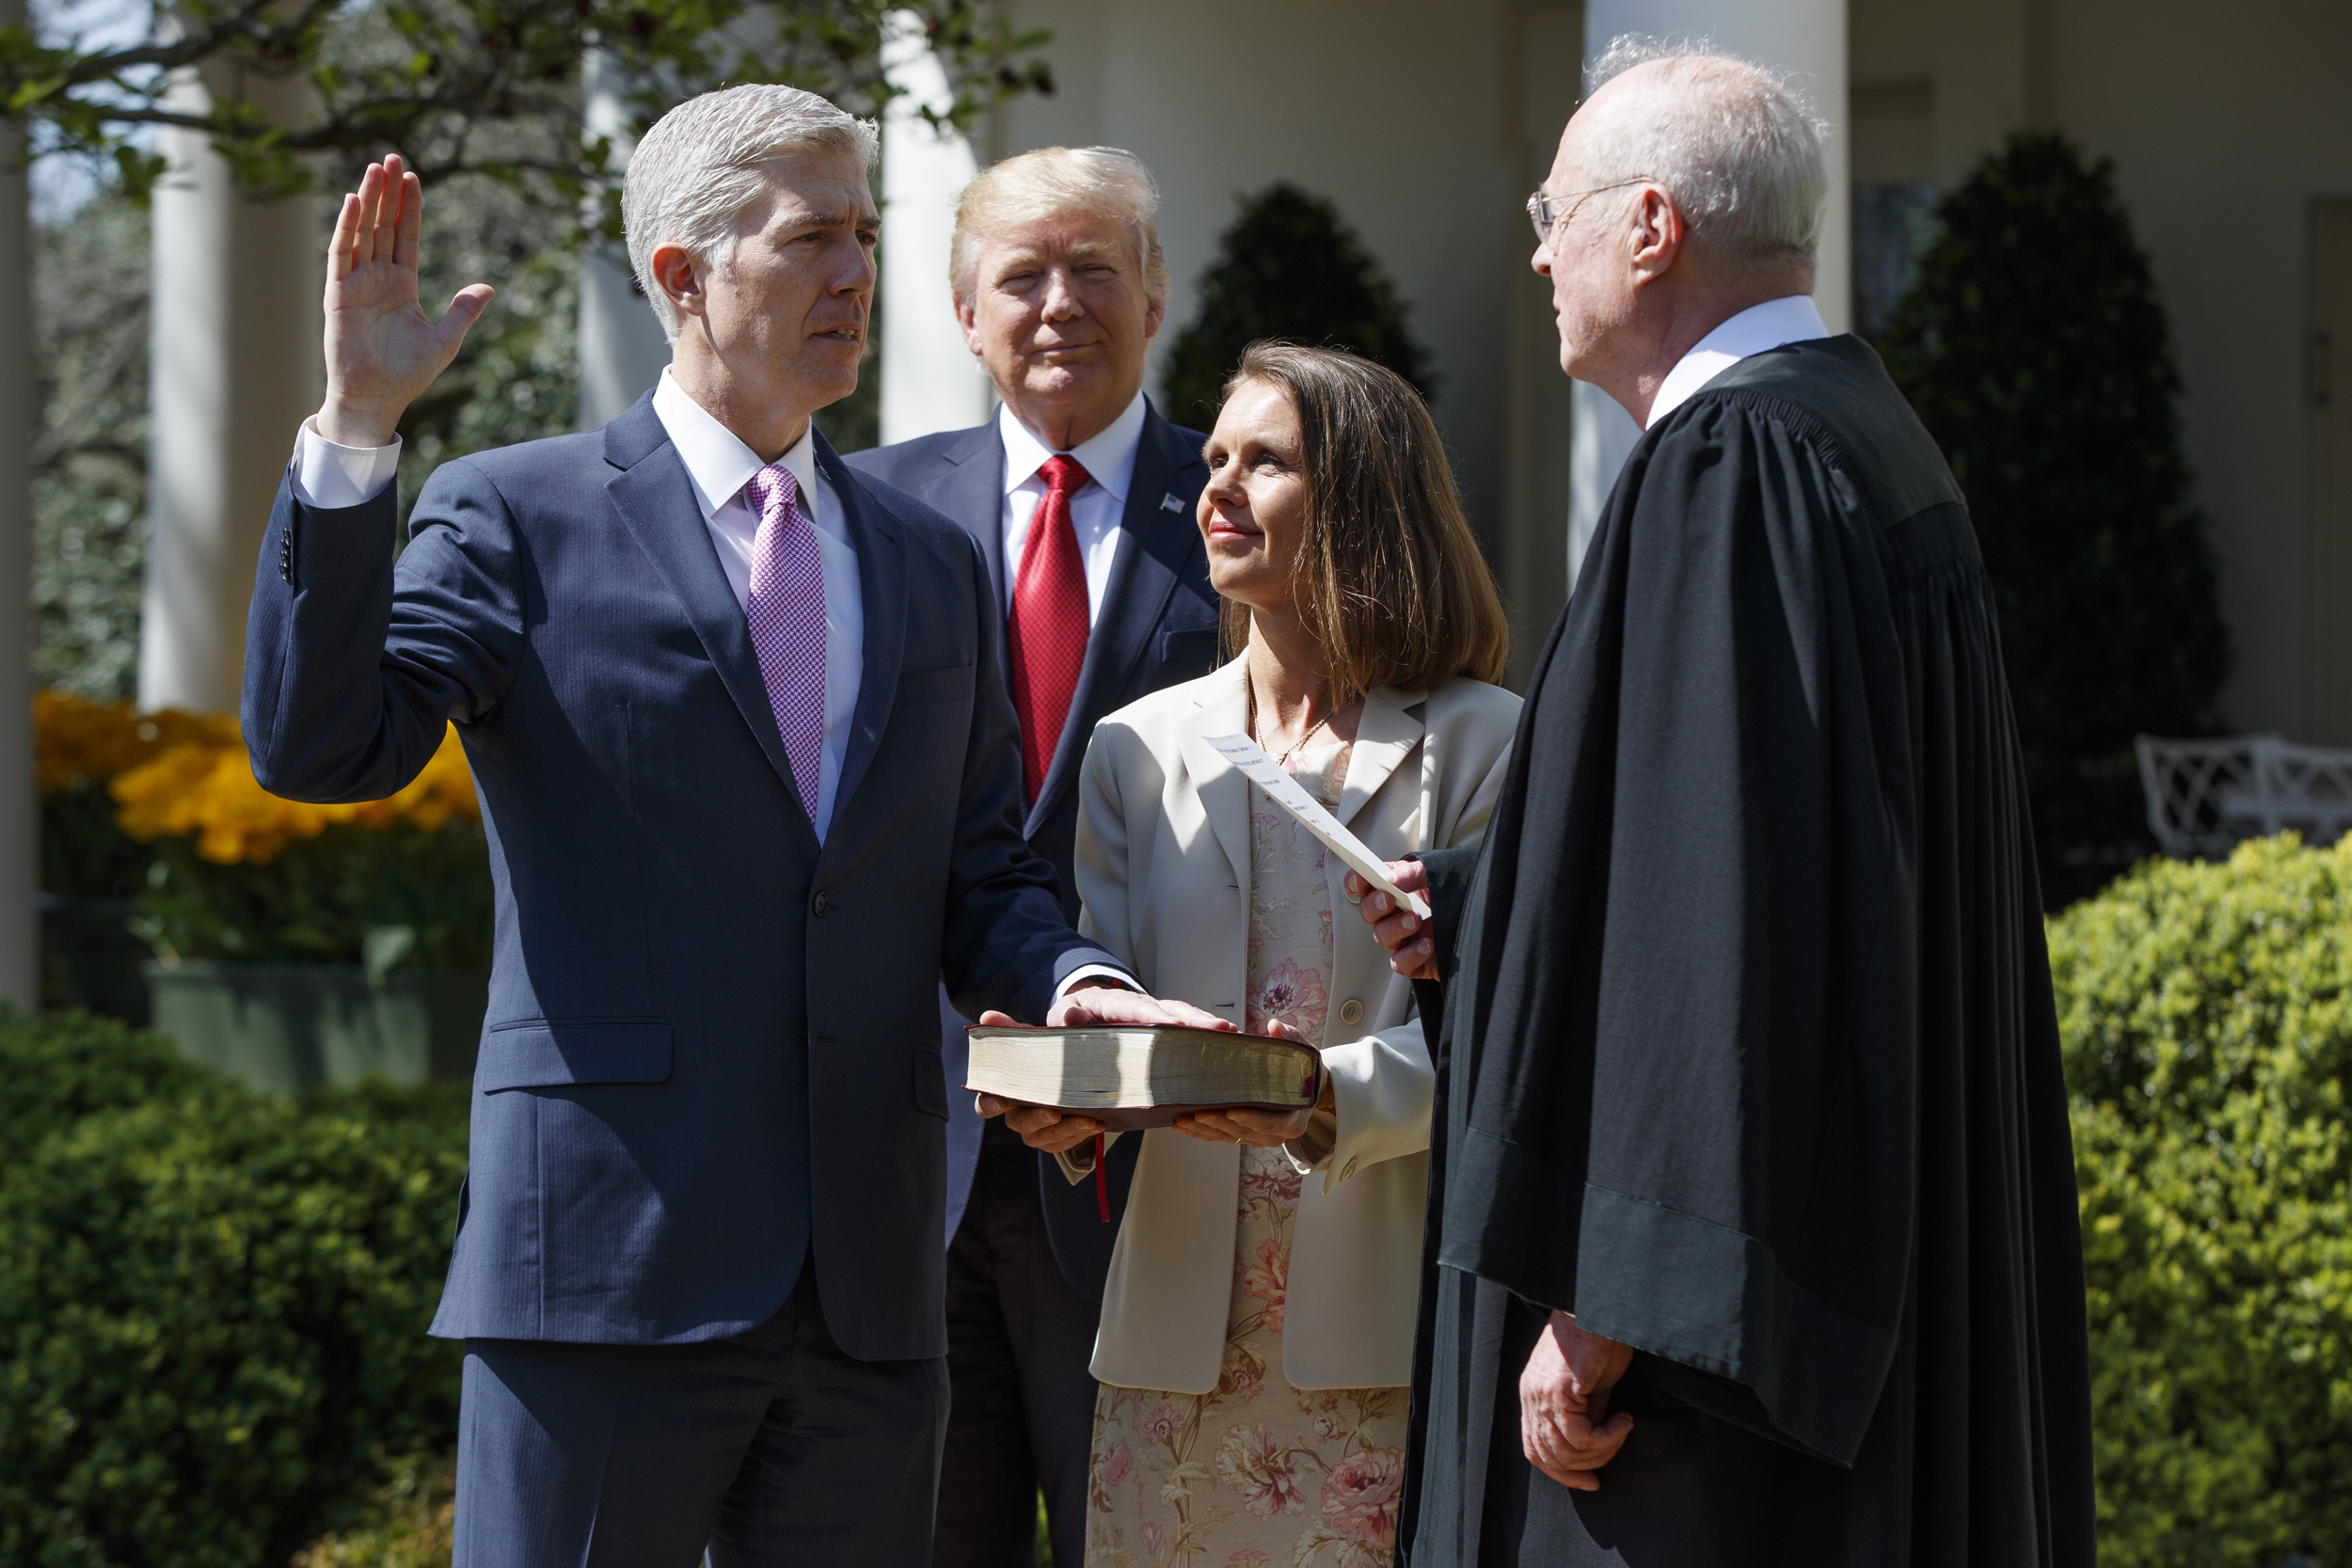 Image: Kennedy administers the judicial oath to Judge Neil Gorsuch